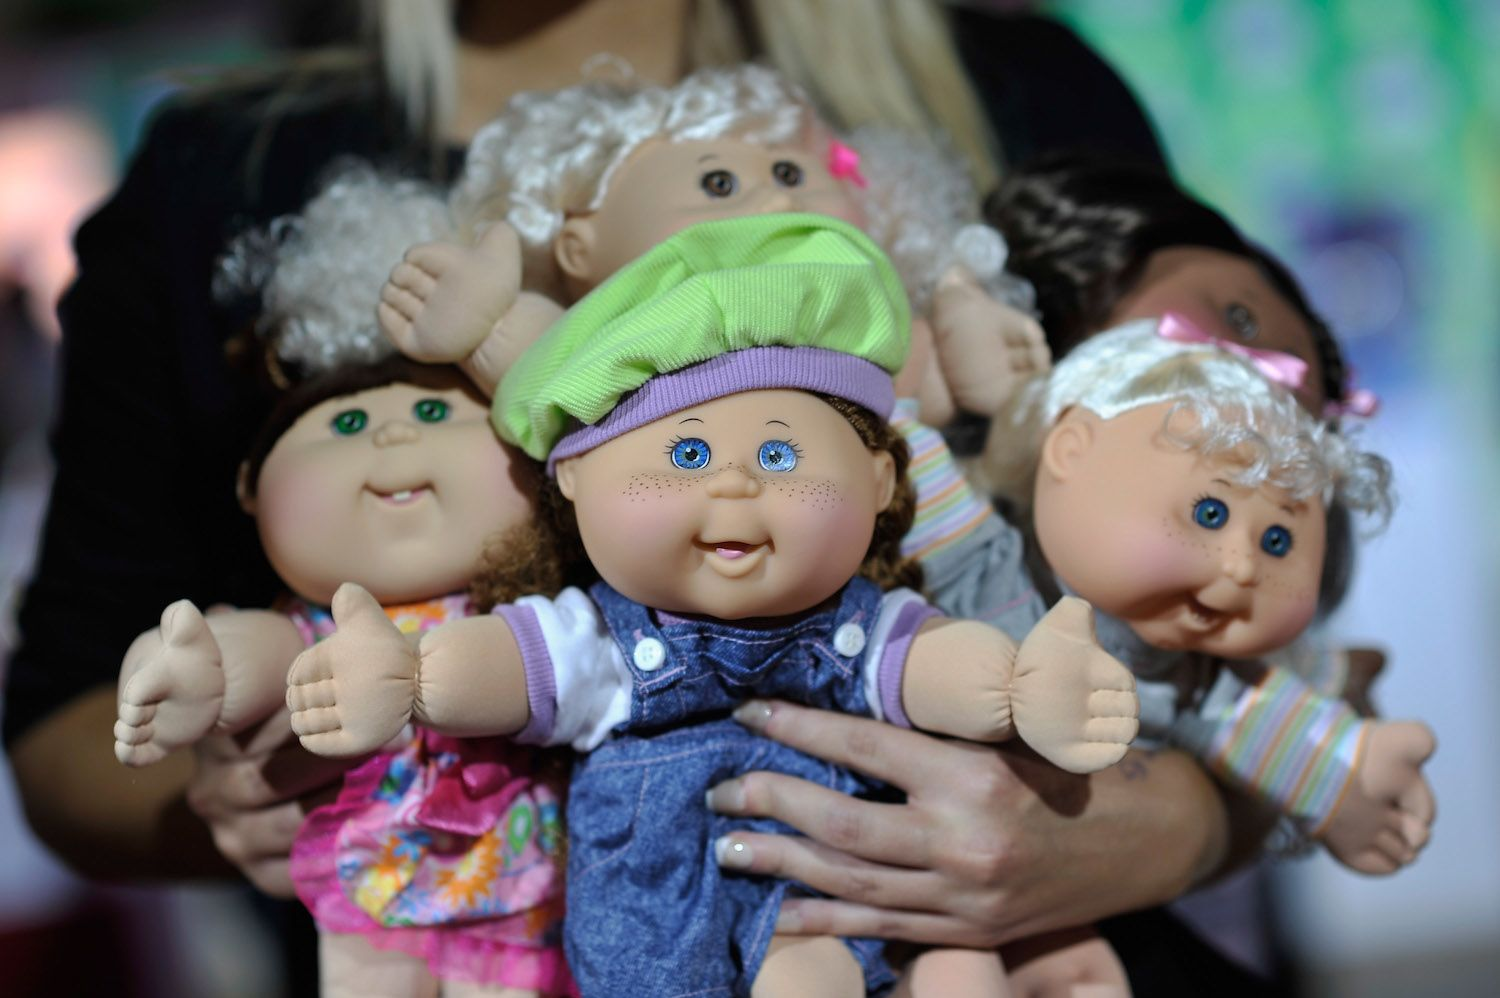 10 Adorable Facts About Cabbage Patch Kids Mental Floss